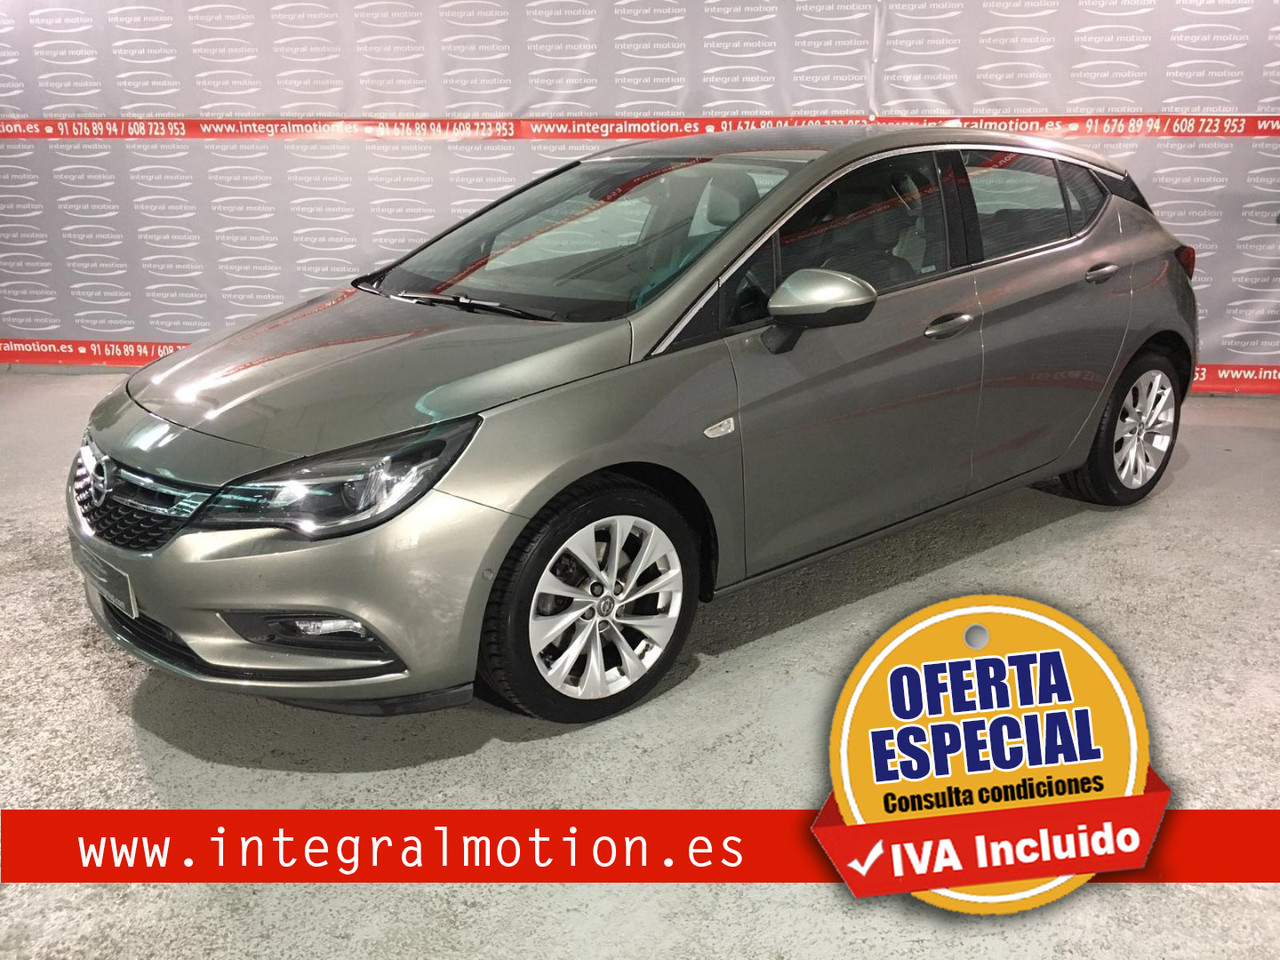 Opel Astra 1.6 CDTi S/S 100kW (136CV) Excellence  - Foto 1